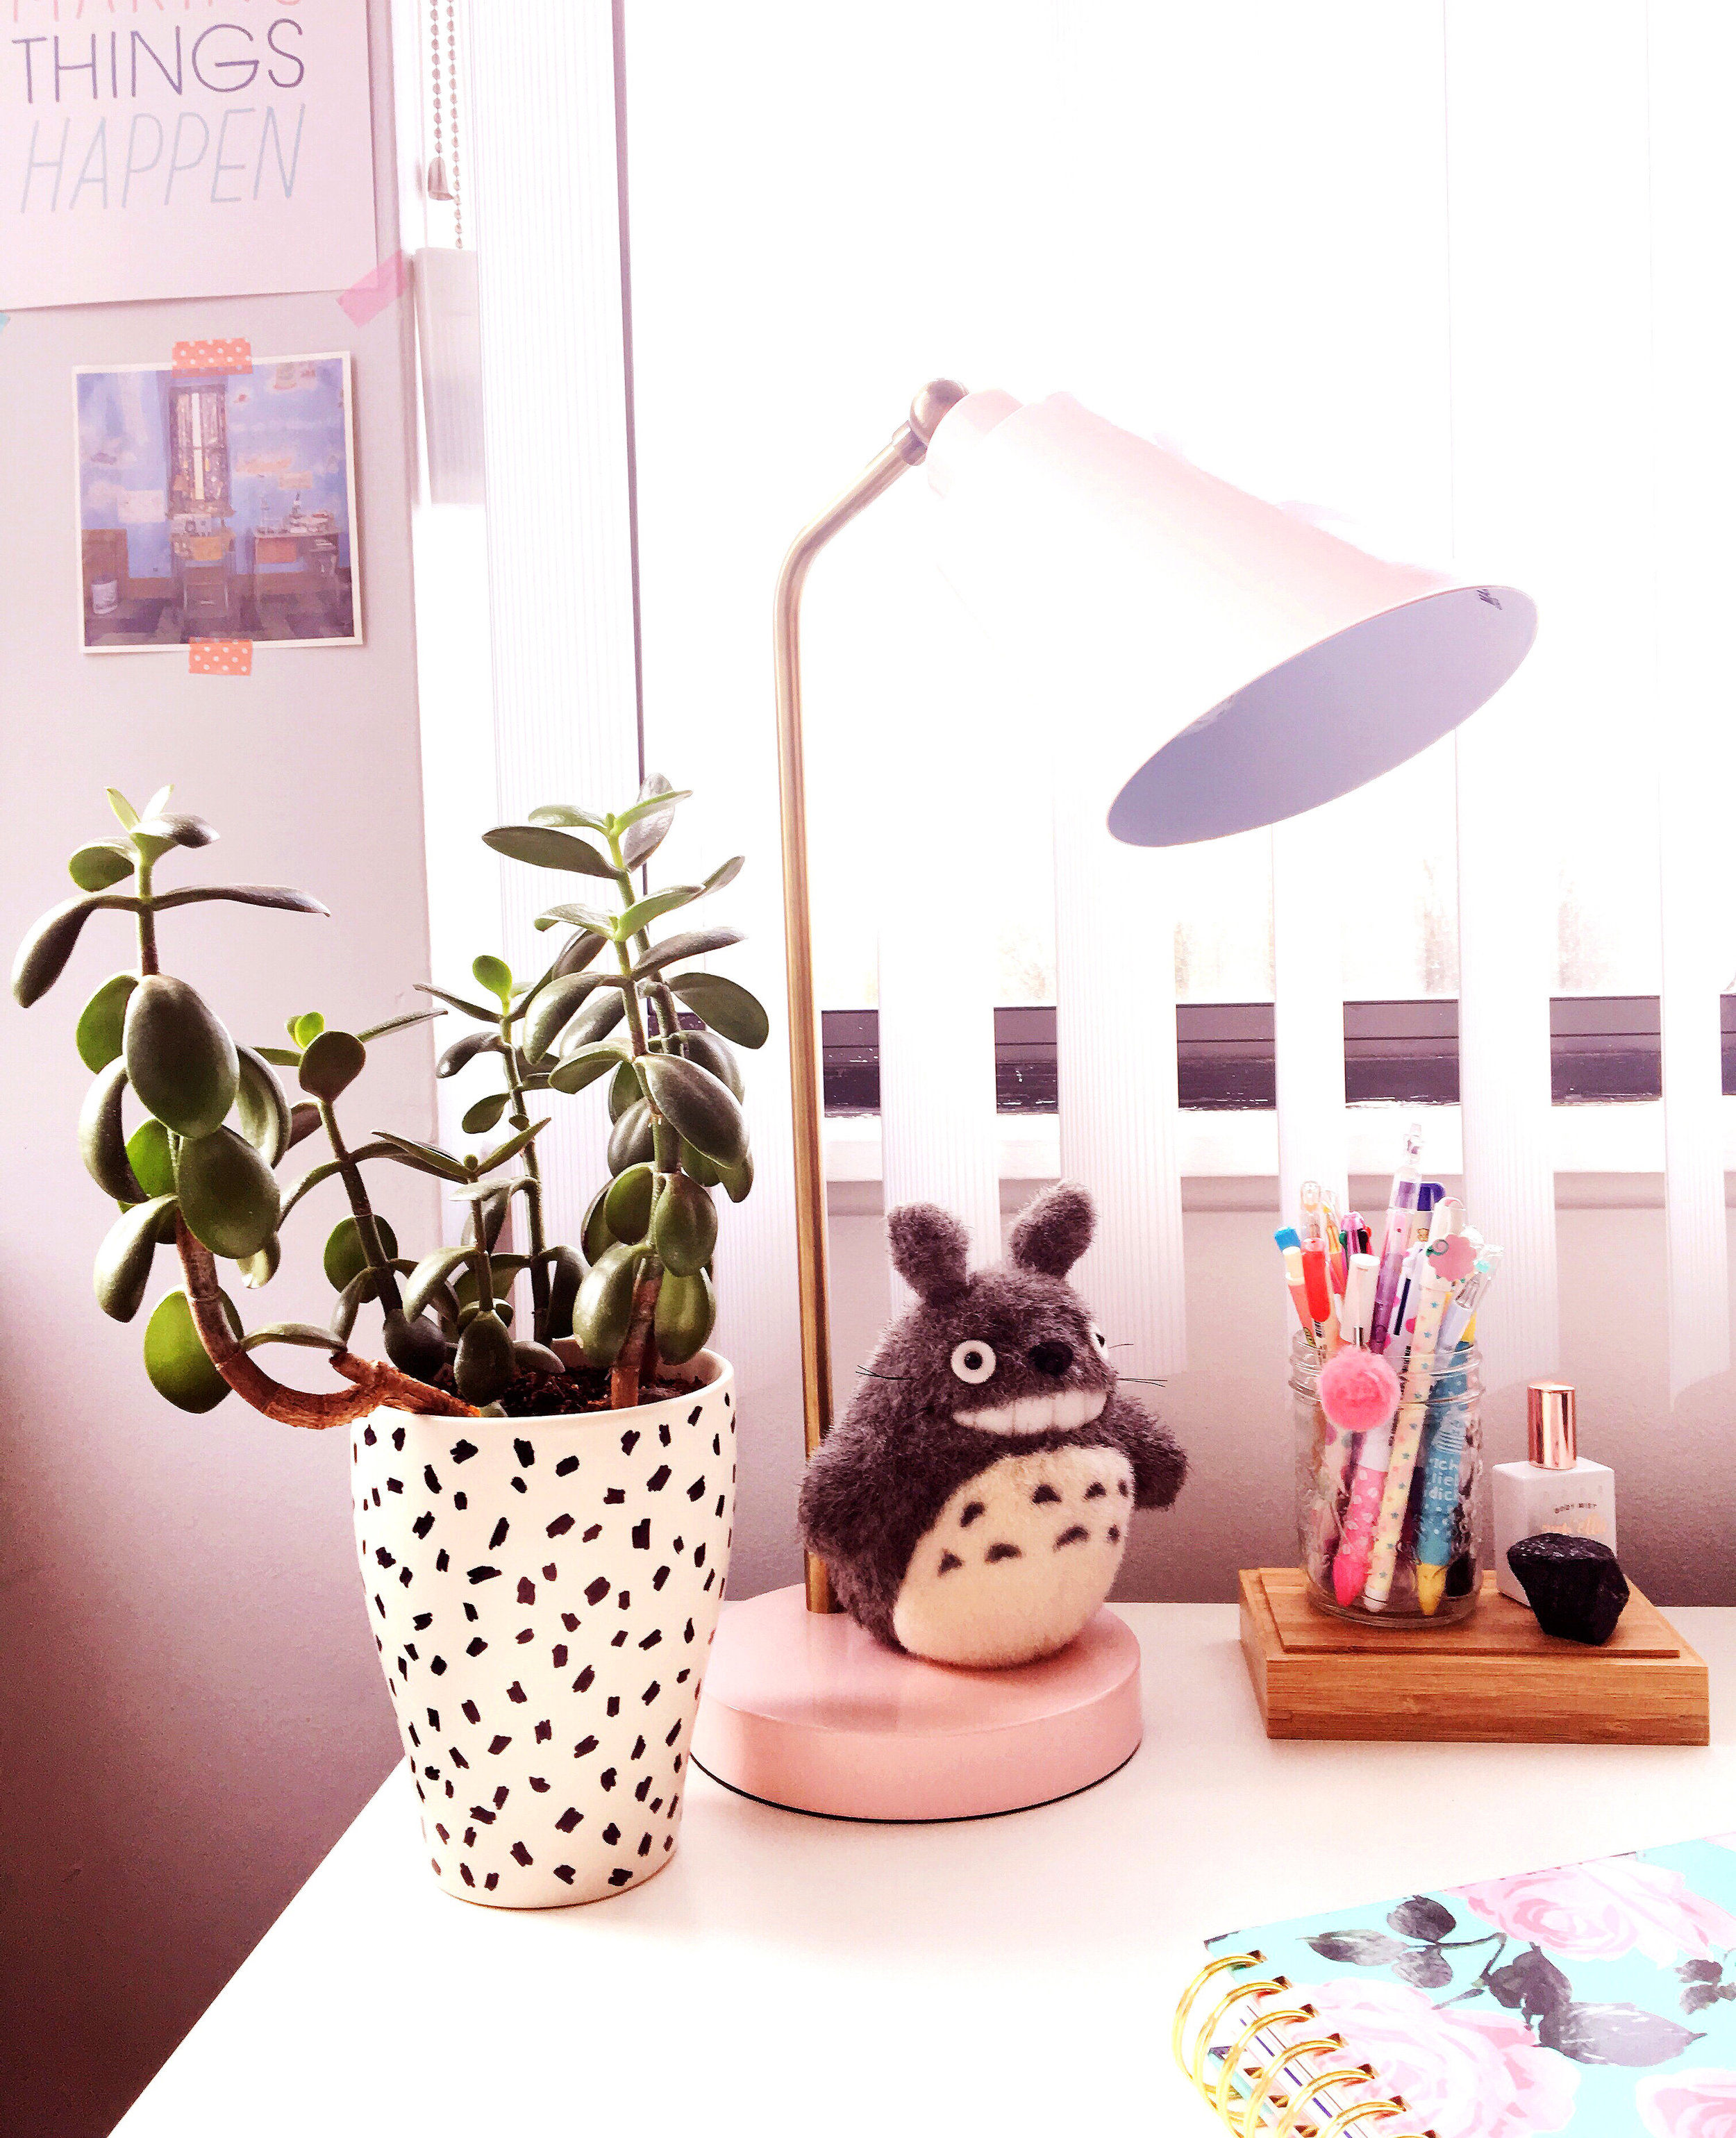 THE FUNKY FRESH / PINK JAPAN DESK DECOR